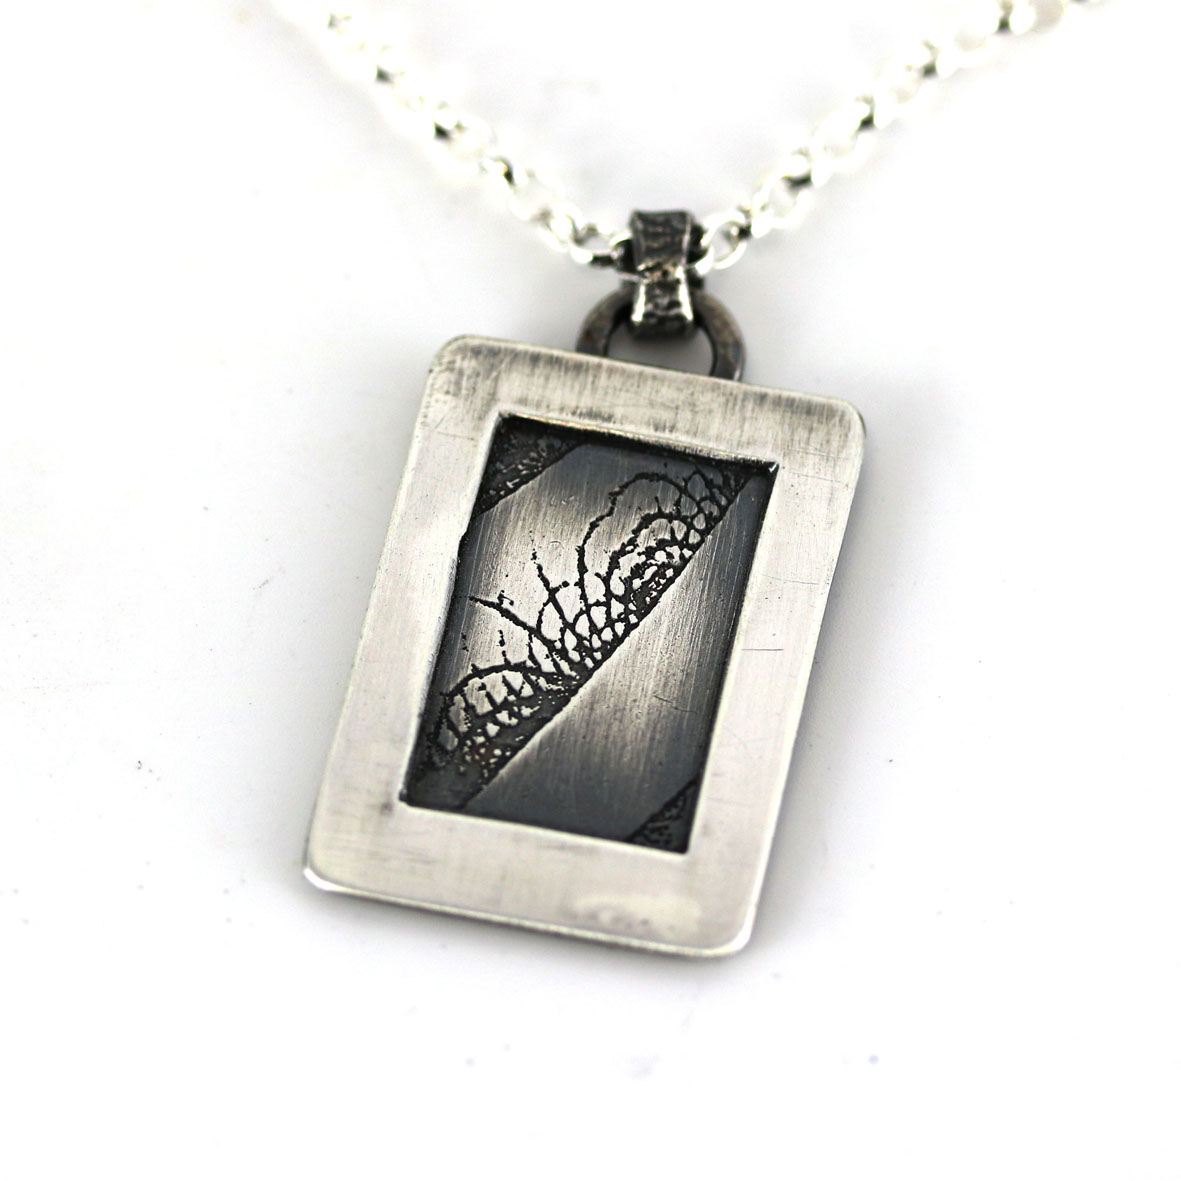 Etched silver pendant